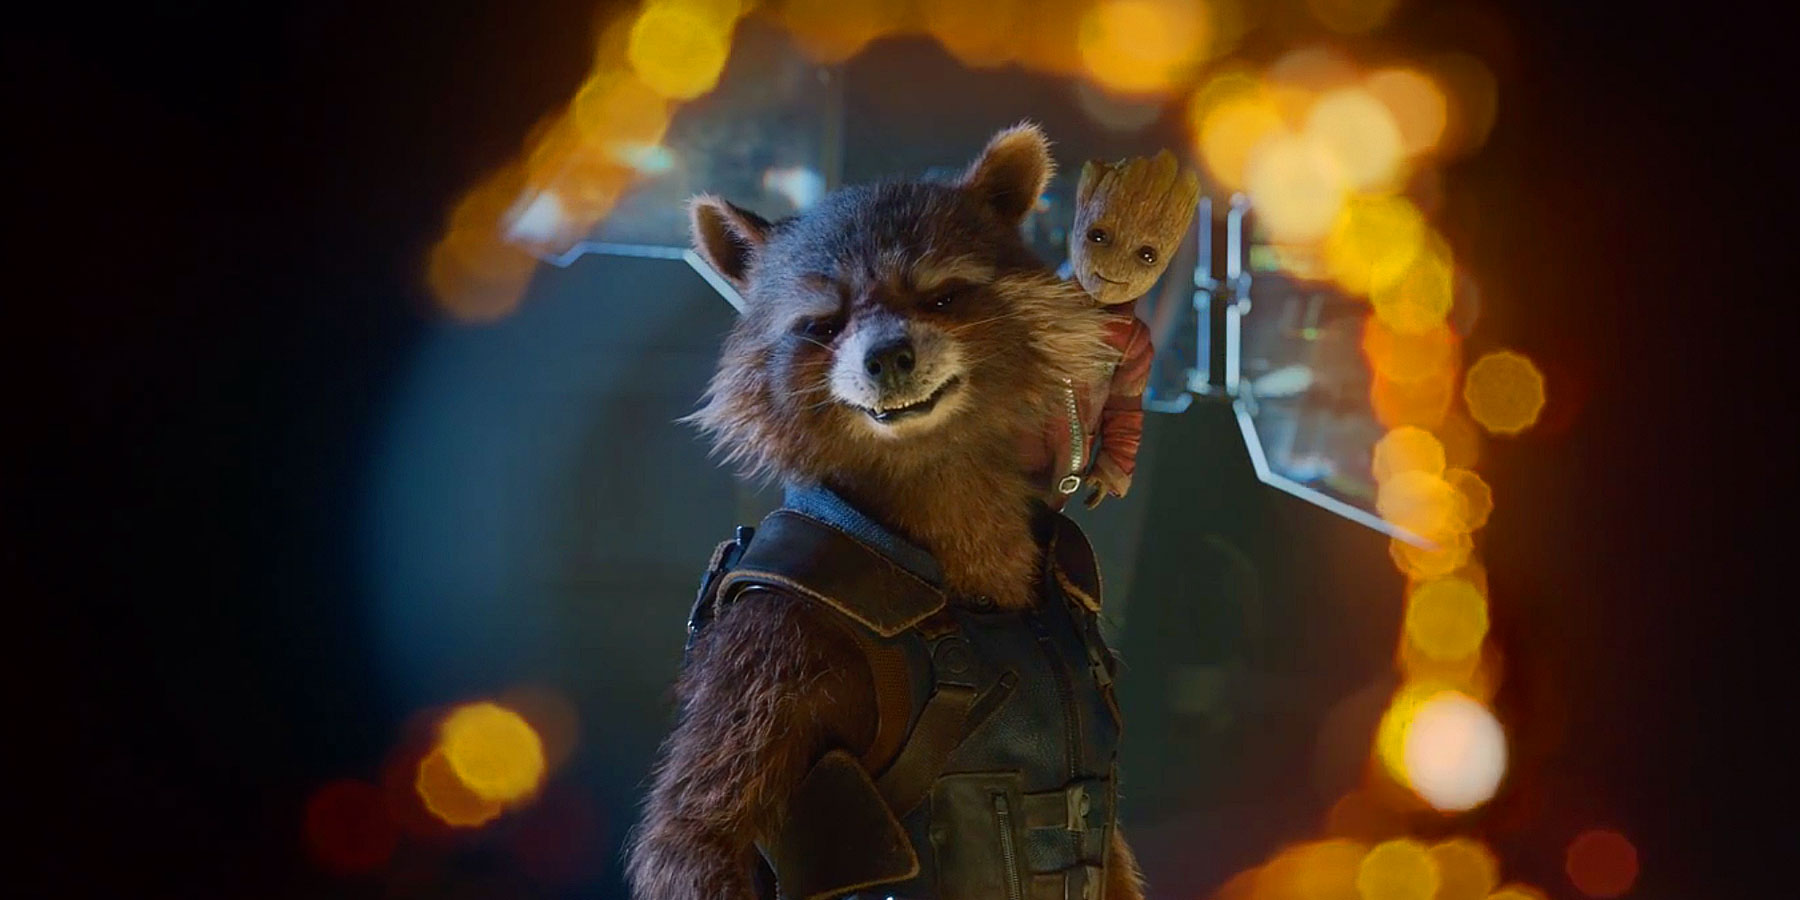 groot and rocket relationship counseling